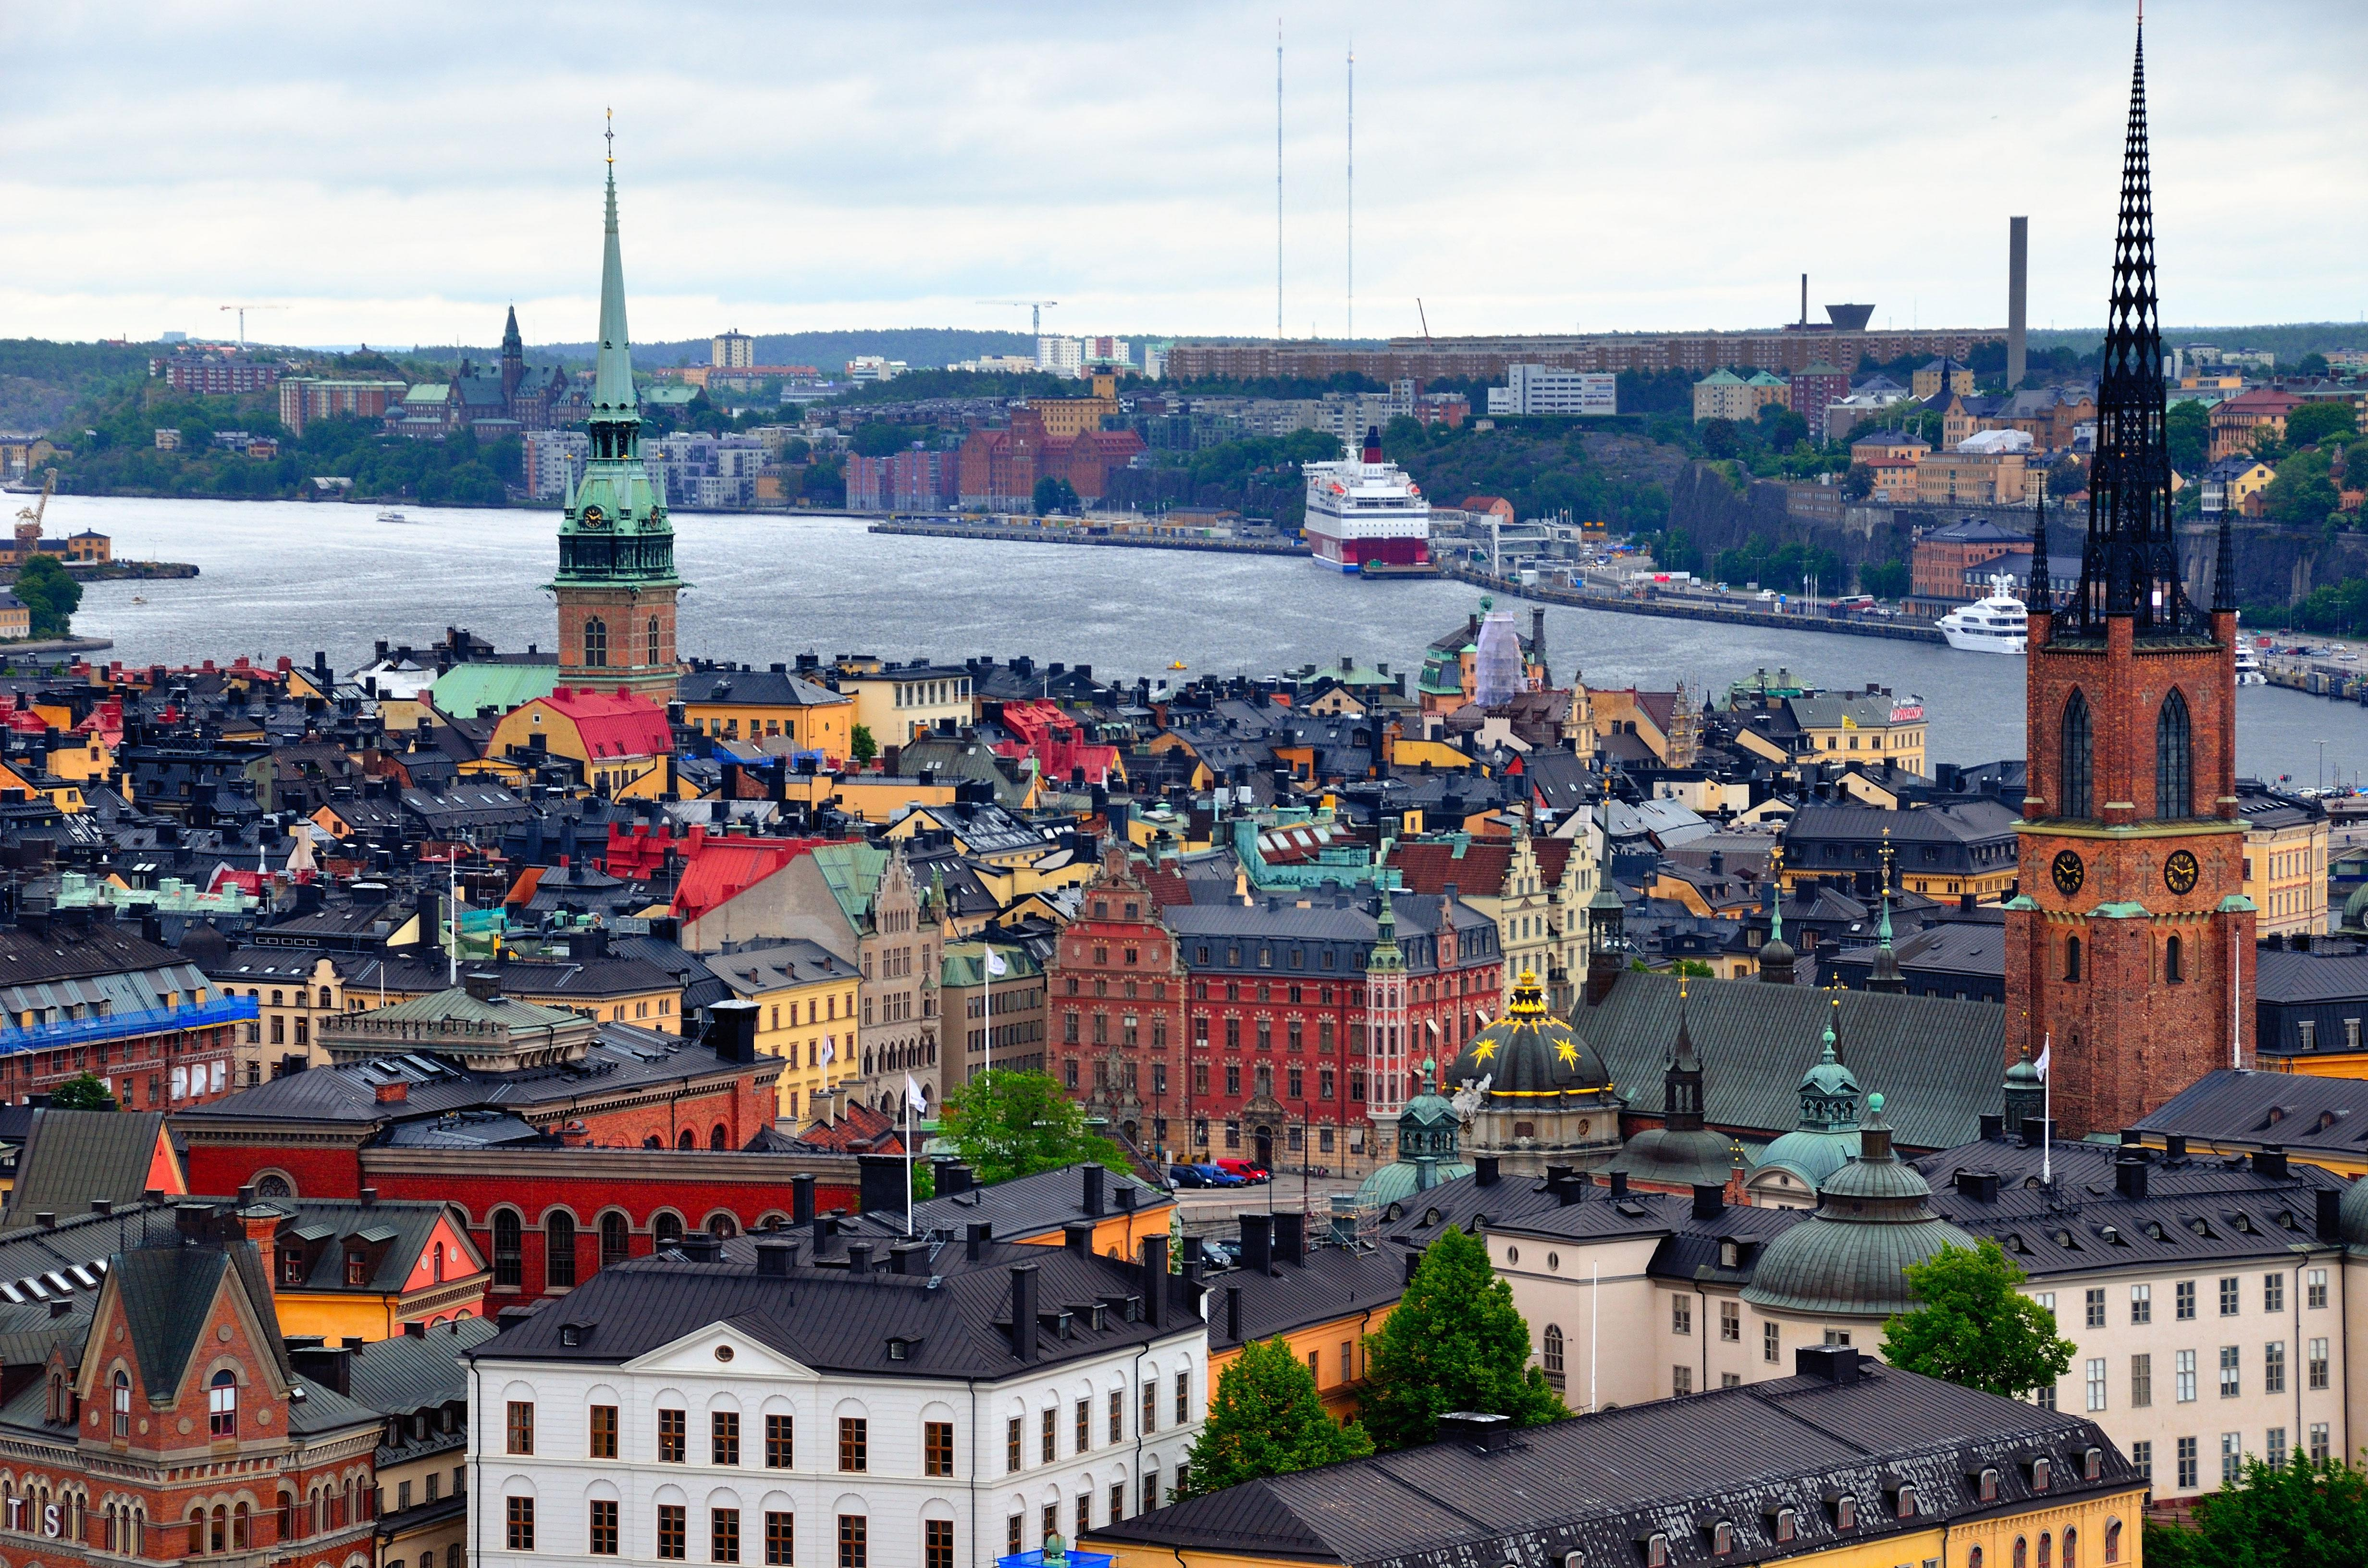 """<p>This Swedish city is the new Capital of Cool. With a bustling art scene, virtually unlimited nightlife, and restaurants that have foodies crossing the channel to sample, Stockholm is totally in the now. And while the <a href=""""https://www.grandhotel.se/en"""" rel=""""nofollow noopener"""" target=""""_blank"""" data-ylk=""""slk:Grand Hôtel"""" class=""""link rapid-noclick-resp""""><strong>Grand Hôtel</strong></a> stands stately as ever, a slew of new luxury hotels has opened to welcome luxe party enthusiasts, notably the <a href=""""http://www.etthem.se"""" rel=""""nofollow noopener"""" target=""""_blank"""" data-ylk=""""slk:Et Hem,"""" class=""""link rapid-noclick-resp""""><strong>Et Hem,</strong></a> the <a href=""""http://www.lydmar.com"""" rel=""""nofollow noopener"""" target=""""_blank"""" data-ylk=""""slk:Lydmar Hotel"""" class=""""link rapid-noclick-resp""""><strong>Lydmar Hotel</strong></a> and the <a href=""""http://www.nobishotel.se/en/"""" rel=""""nofollow noopener"""" target=""""_blank"""" data-ylk=""""slk:Nobis Hotel"""" class=""""link rapid-noclick-resp"""">Nobis Hotel</a>. And while art and architecture dominate this once traditional city, luxury explorers are apt to journey further afield to places like the fabulous <a href=""""http://www.treehotel.se/en/"""" rel=""""nofollow noopener"""" target=""""_blank"""" data-ylk=""""slk:Treehotel in Lule River Valley"""" class=""""link rapid-noclick-resp""""><strong>Treehotel in Lule River Valley</strong></a> (by the Arctic Circle) or even the famous <a href=""""http://www.icehotel.com"""" rel=""""nofollow noopener"""" target=""""_blank"""" data-ylk=""""slk:Icehotel in Jukkasjärvi."""" class=""""link rapid-noclick-resp""""><strong>Icehotel in Jukkasjärvi.</strong></a></p>"""